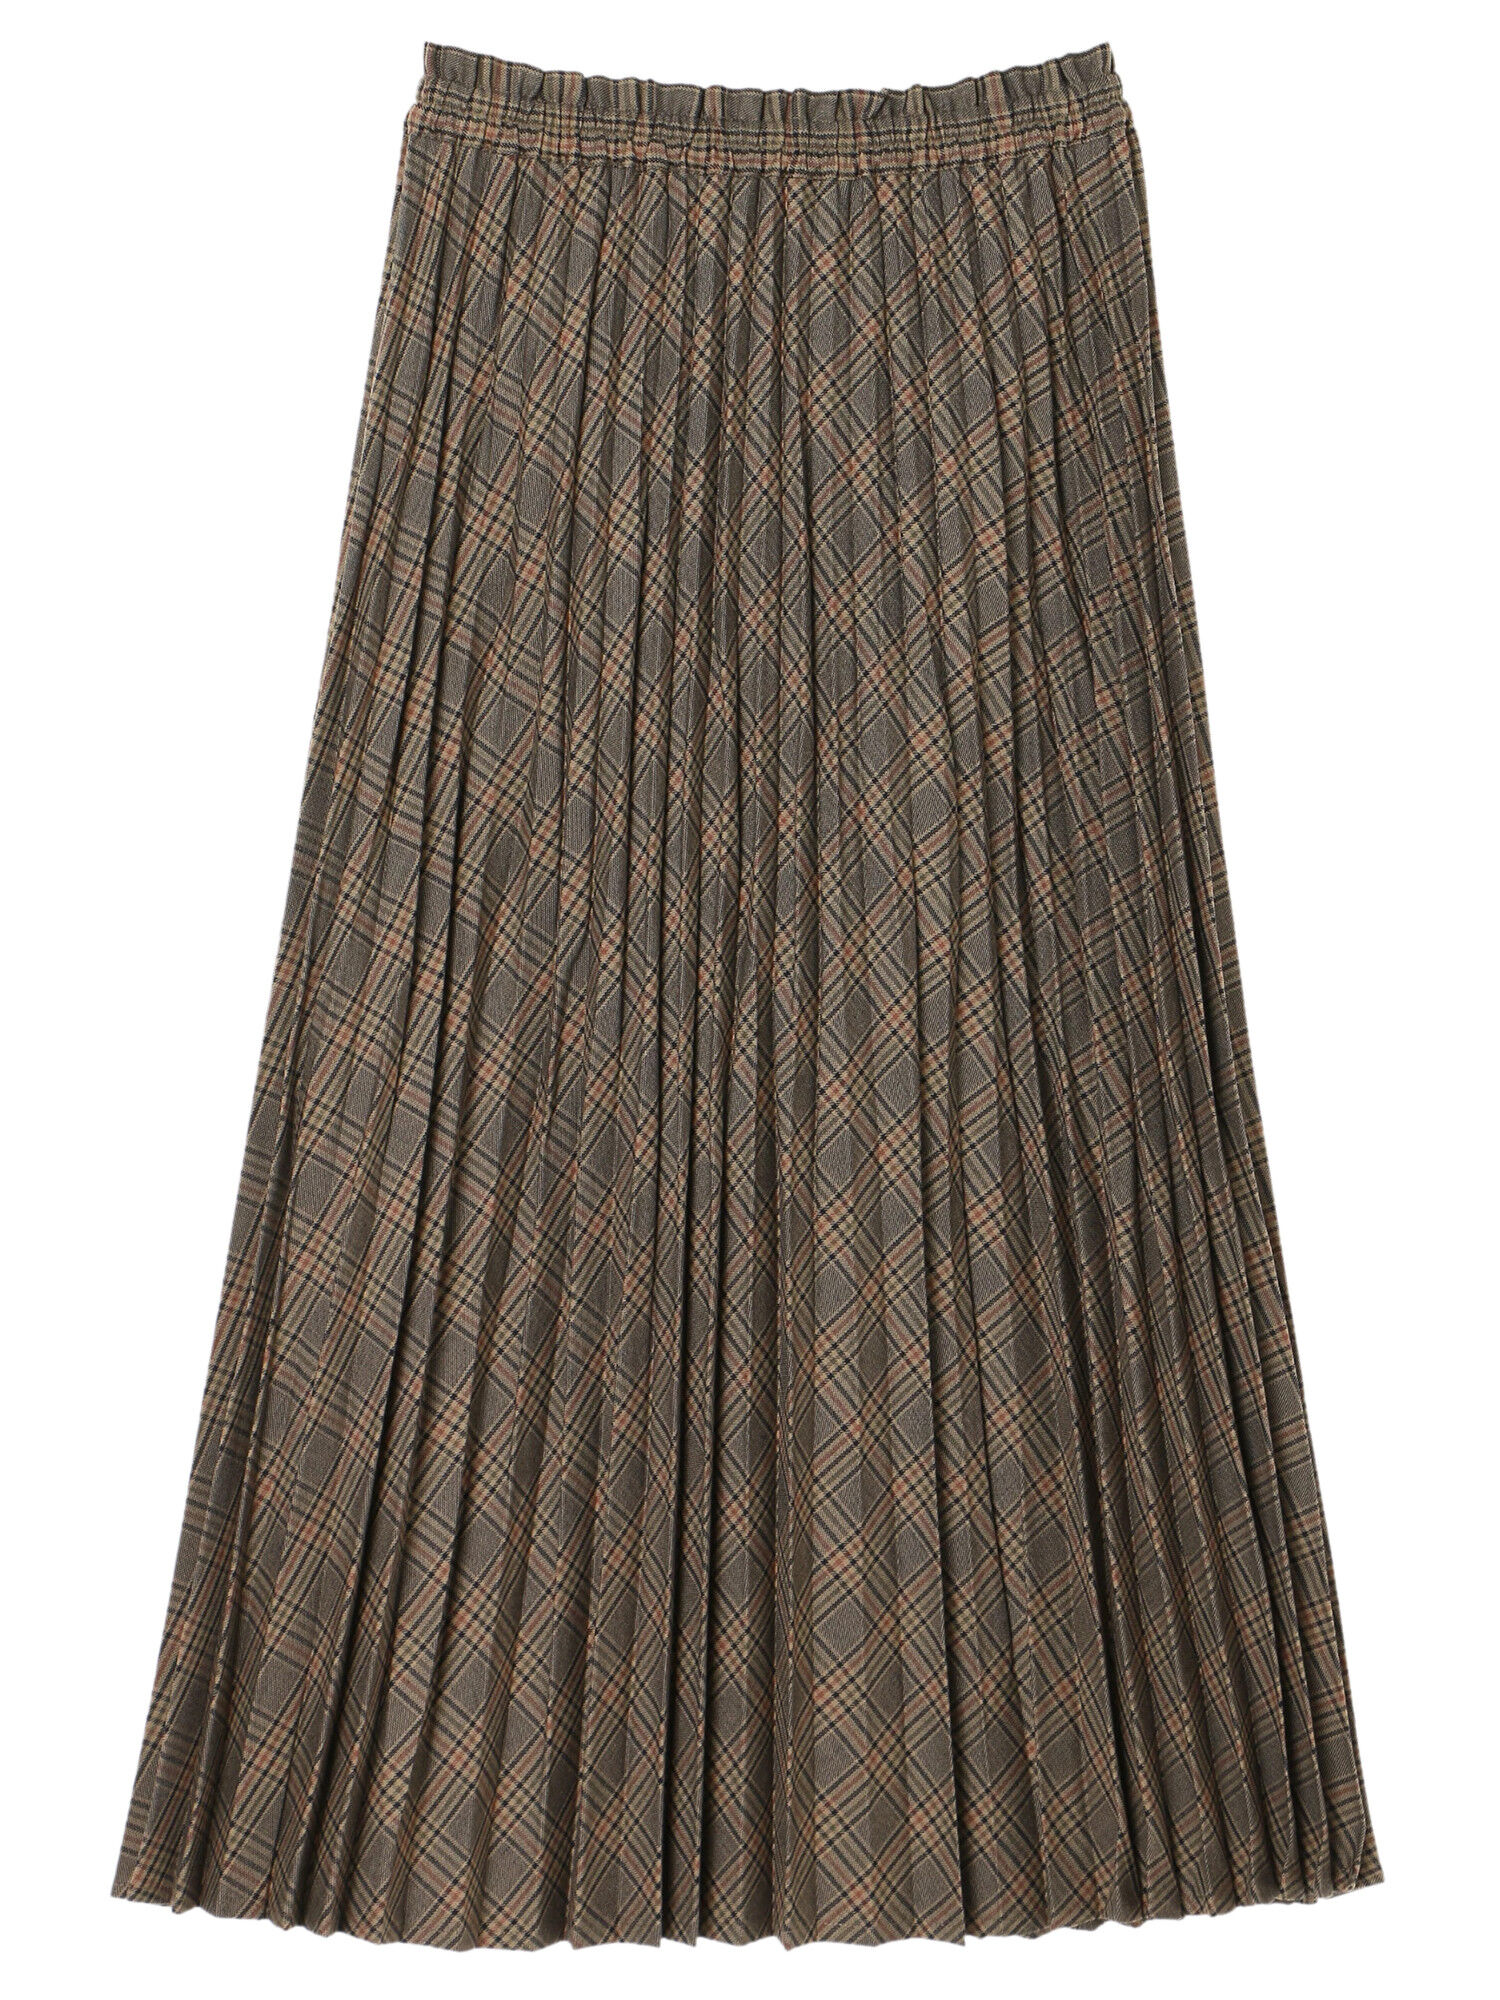 Earth, Music & Ecology Aysen Pleated Skirt - Brown